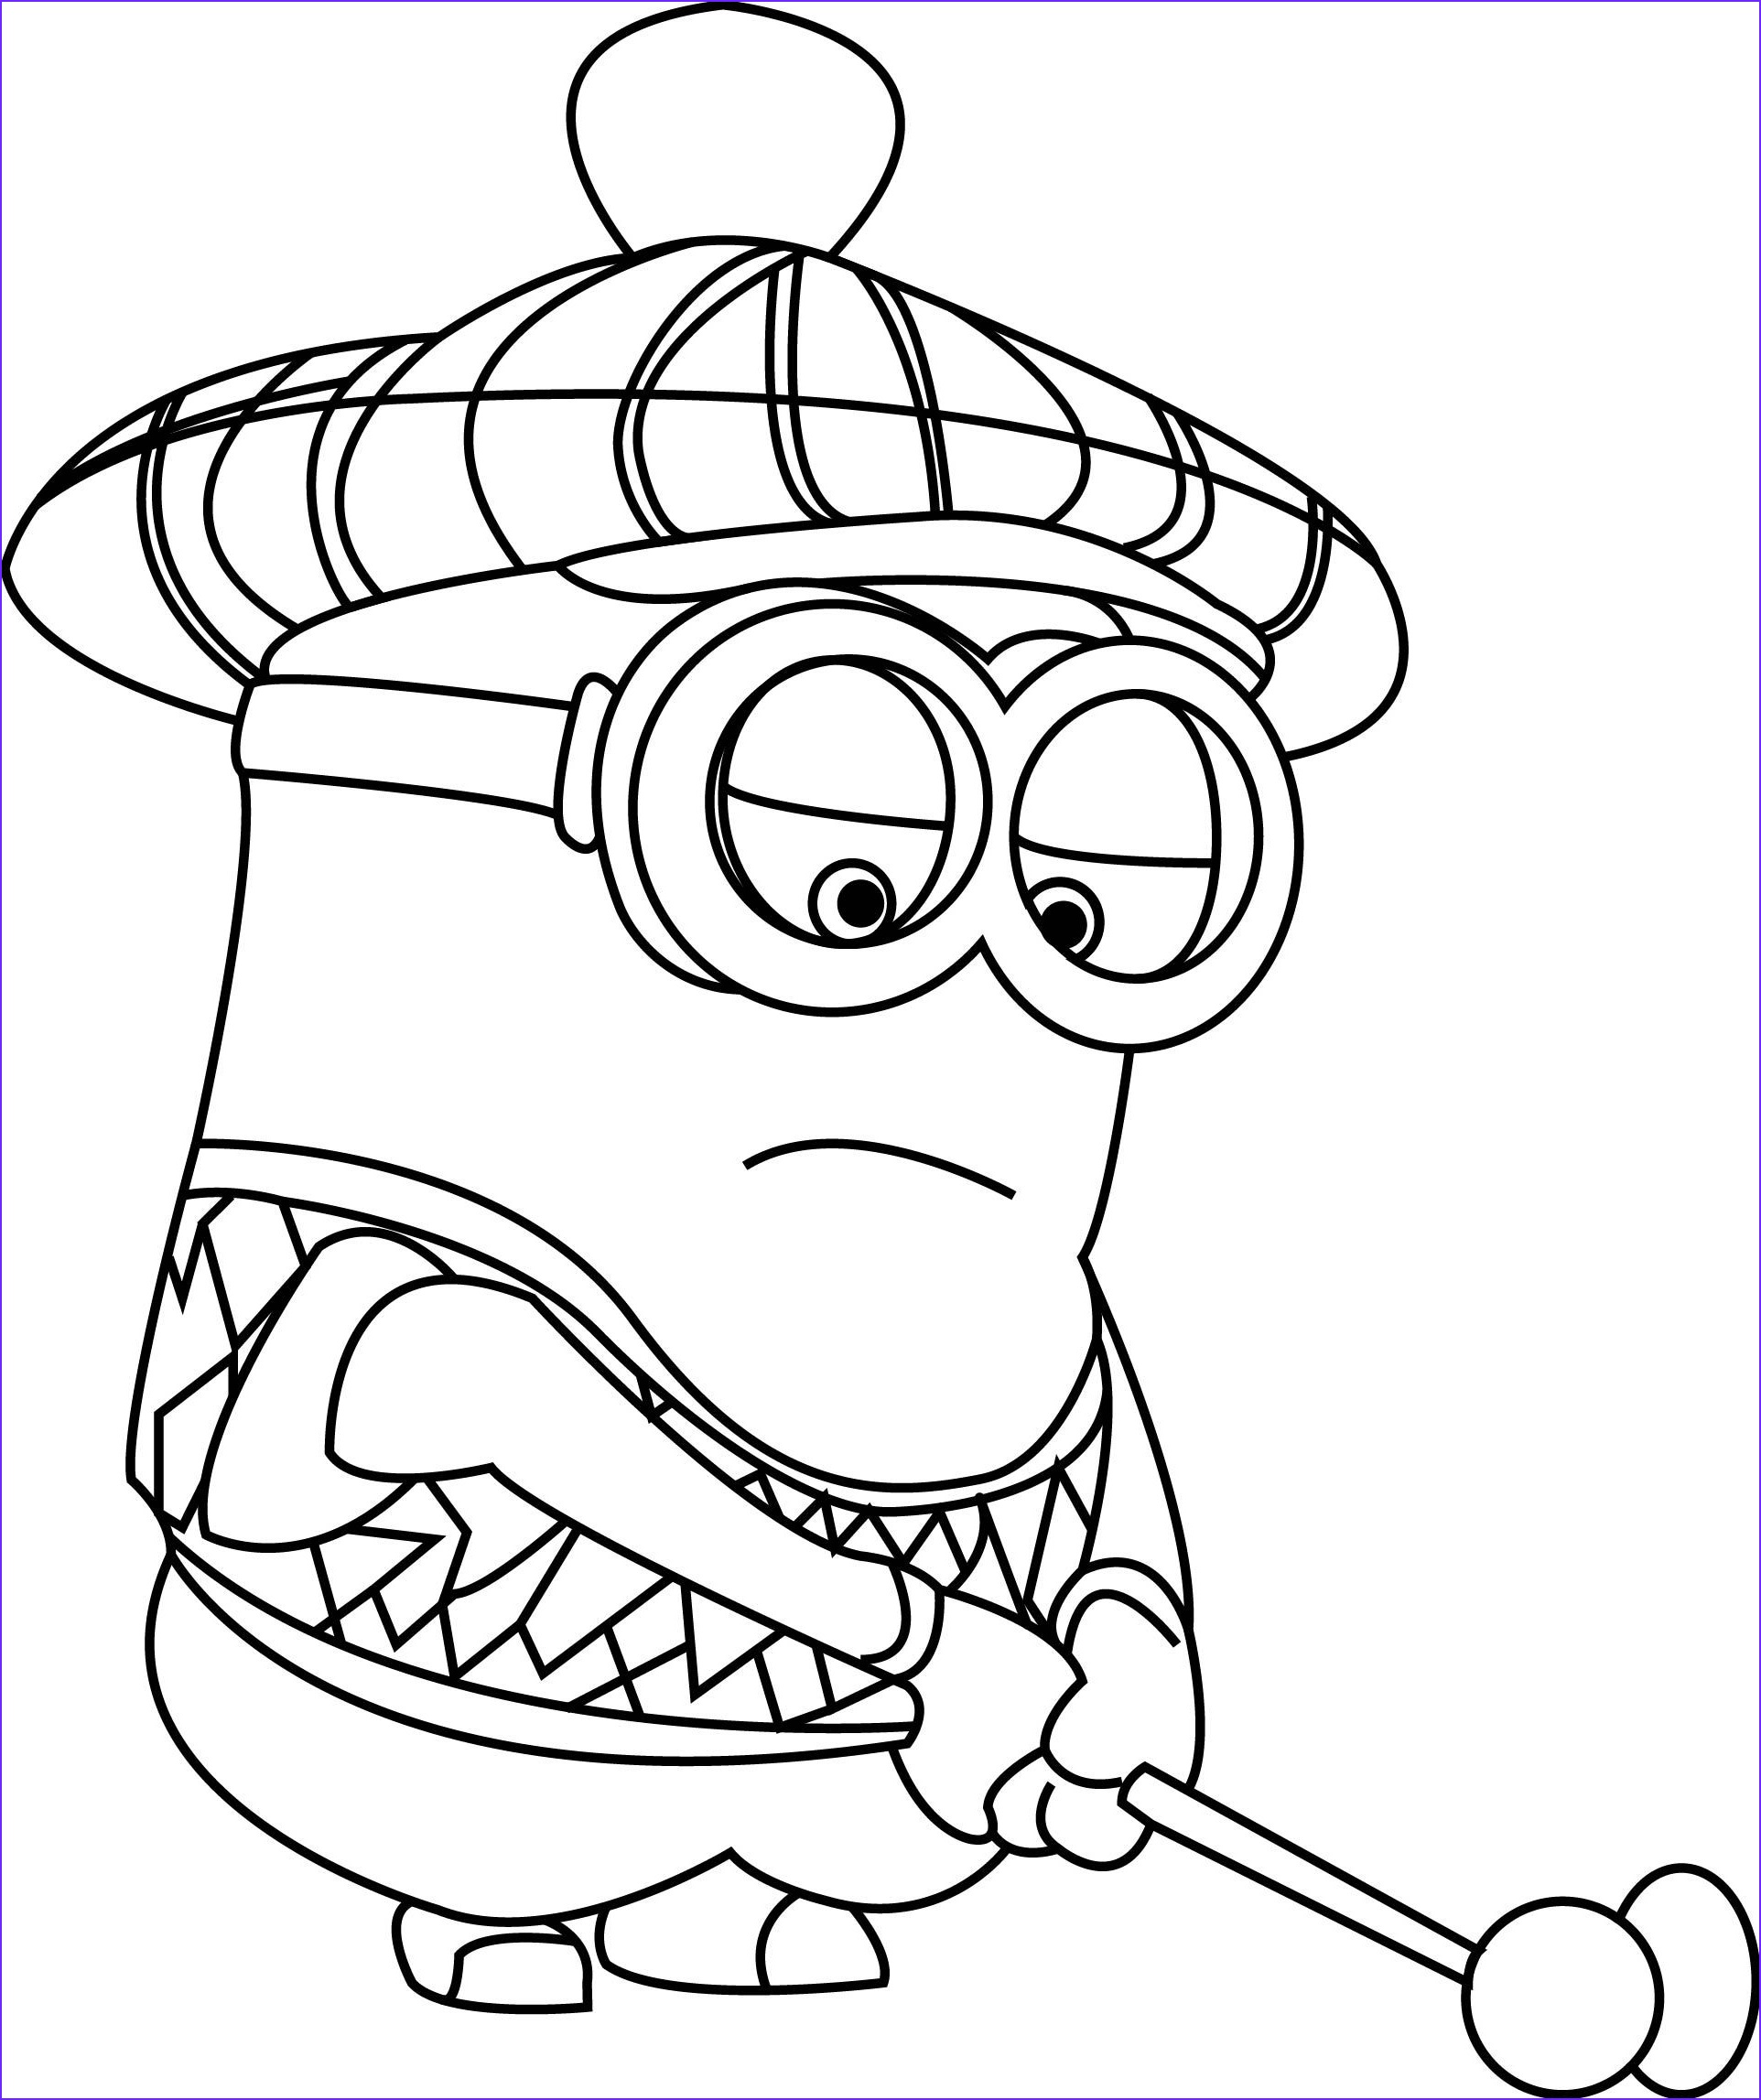 Minion Coloring Book Inspirational Photos Despicable Me Golfer Minion Coloring Pages